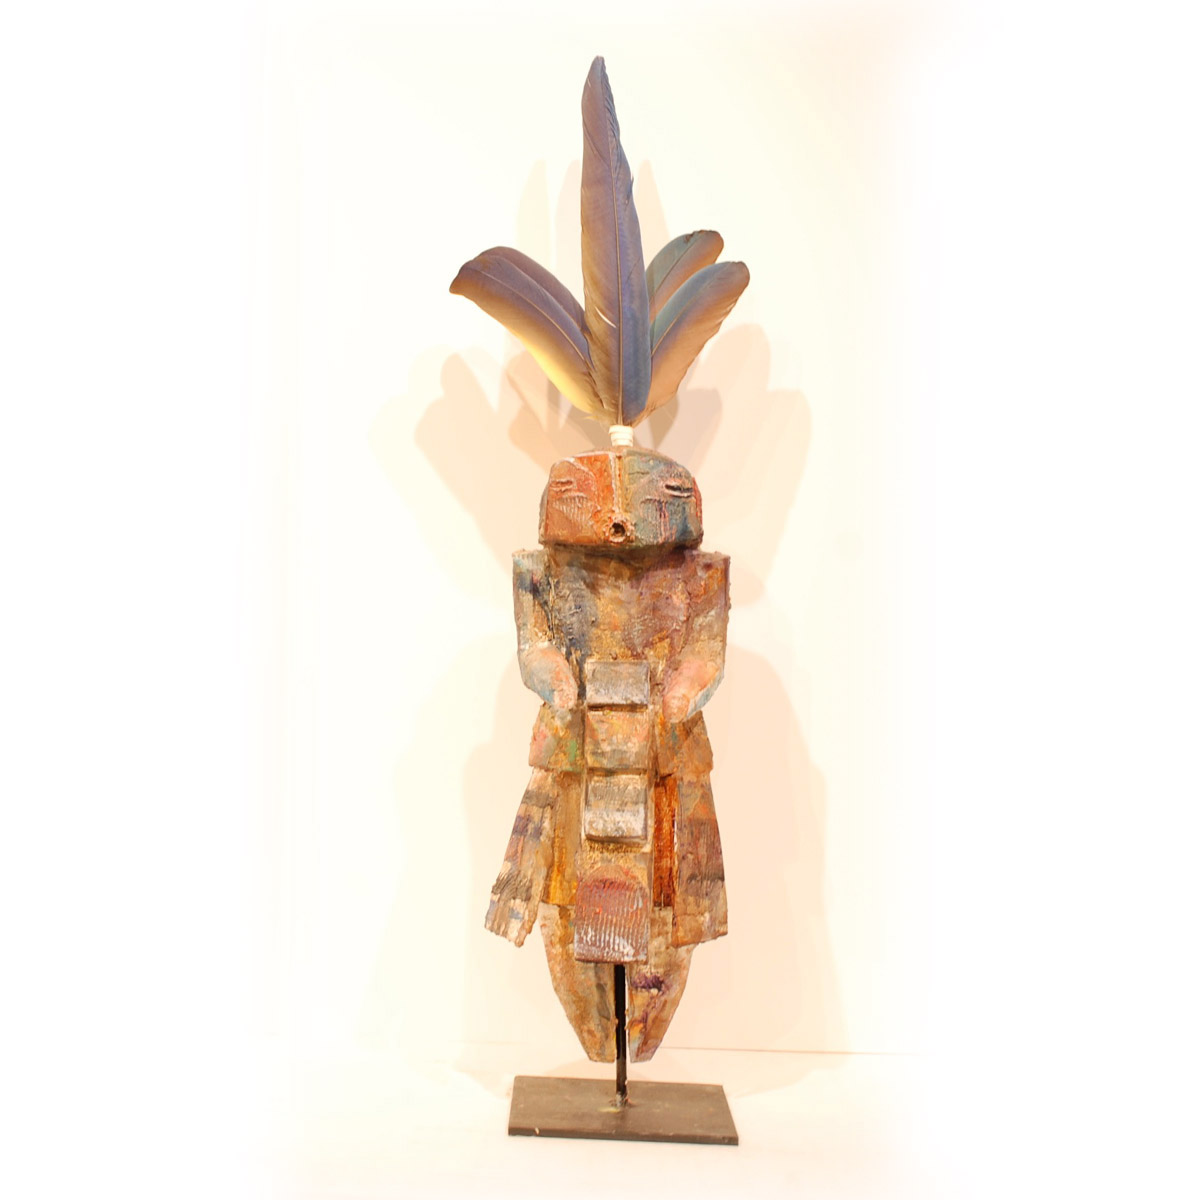 Sheldon Harvey-Navajo-Chimayo Trading del Norte-Sculpture